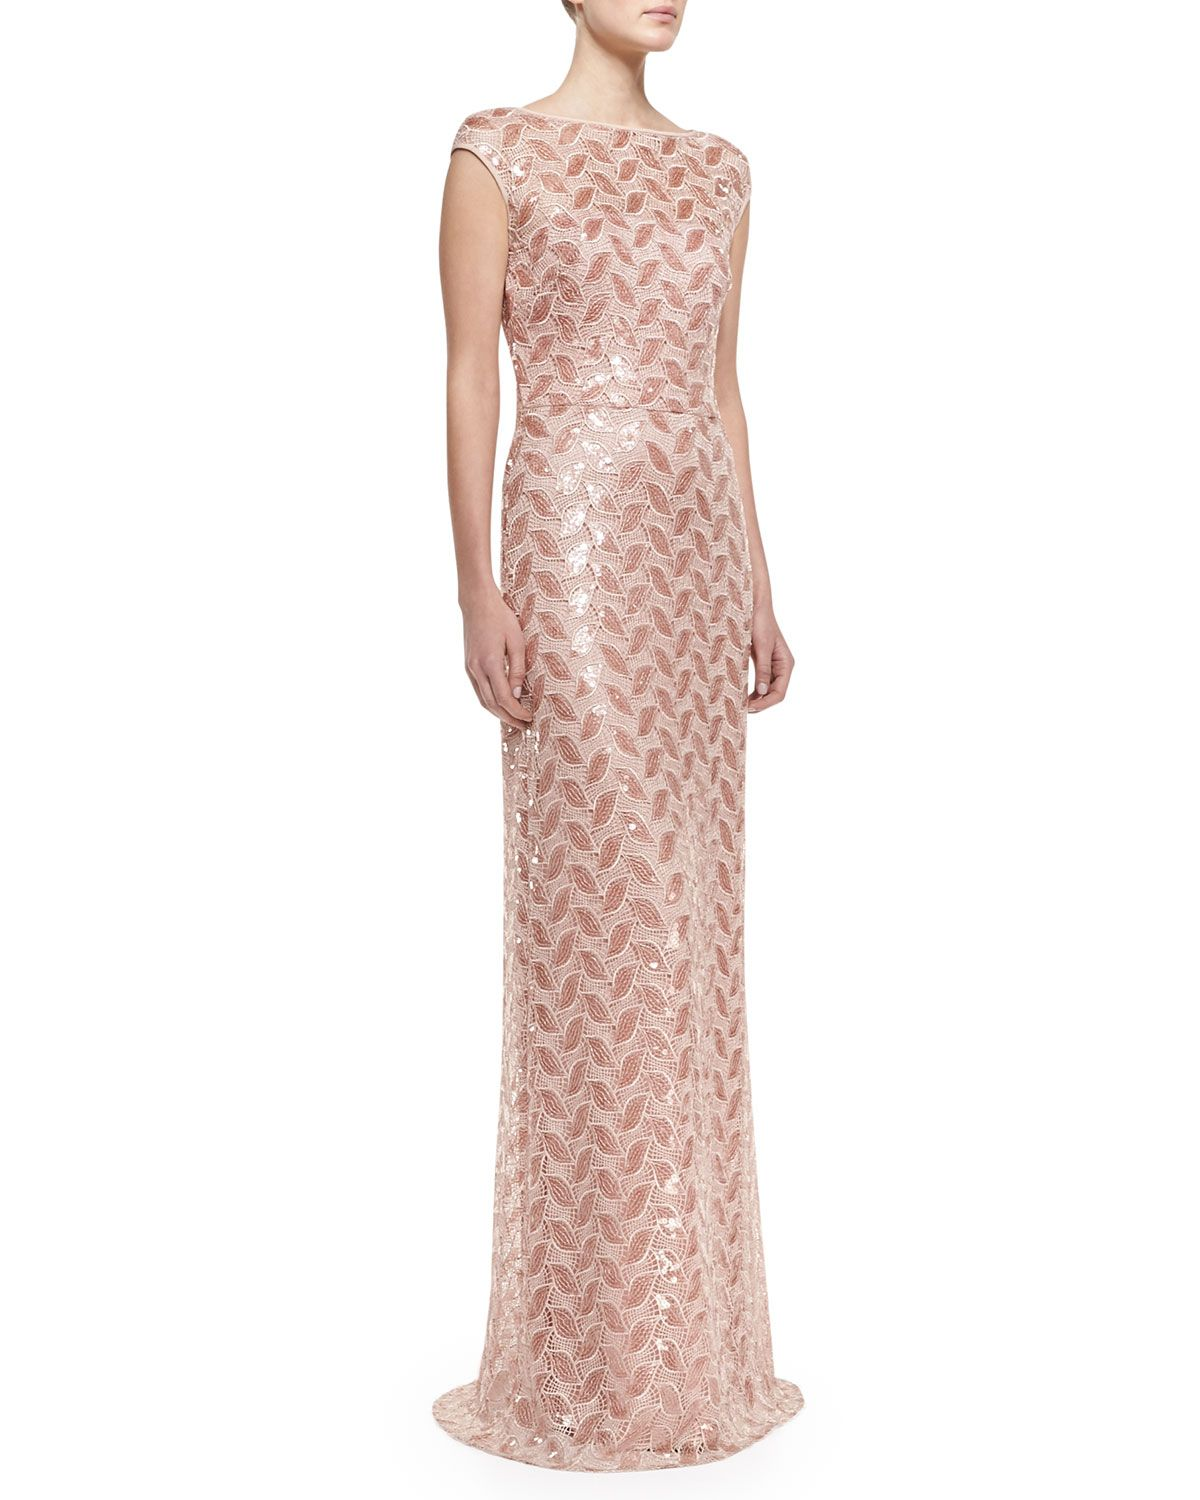 David Meister Cap-Sleeve Beaded Lace Gown in Light & Dark Pink | "|1200|1500|?|en|2|a06e8d723e5e9165689b4e72e08816ed|False|UNLIKELY|0.3465956151485443